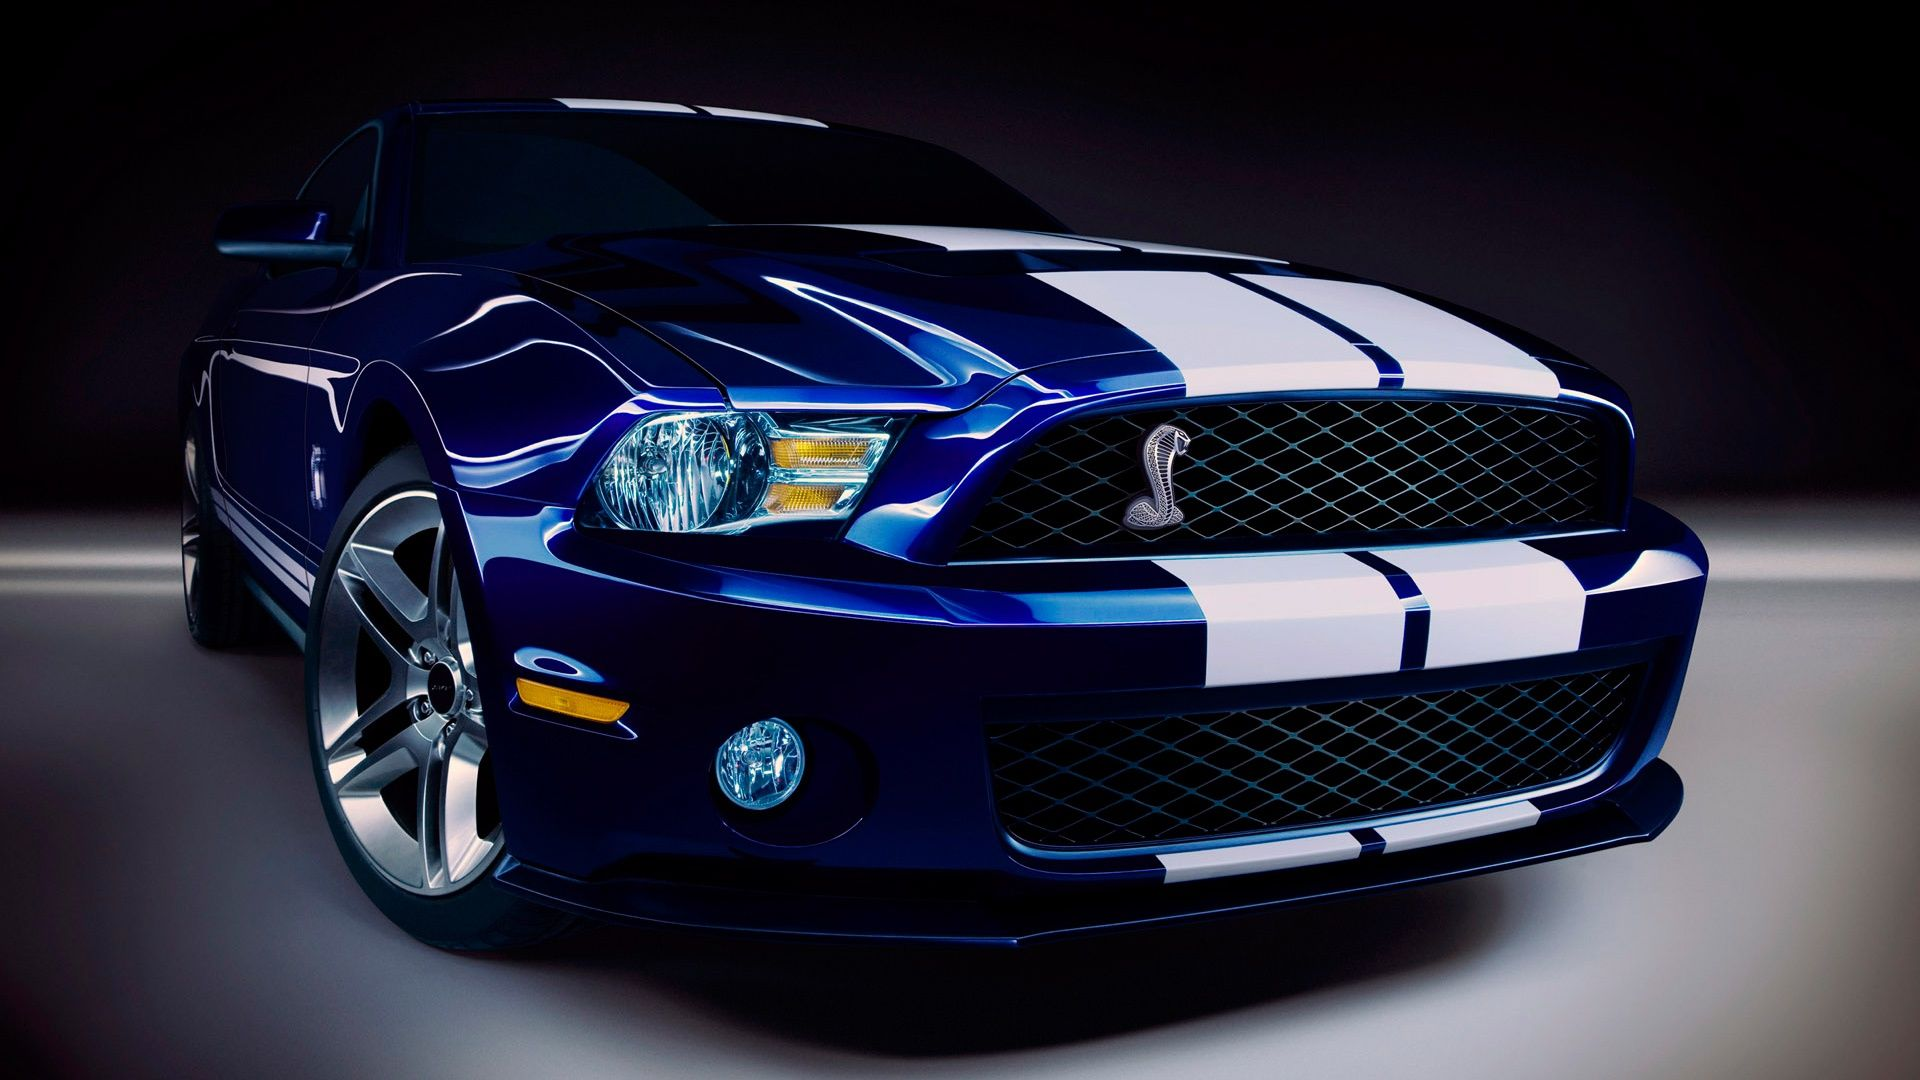 Ford Shelby GT500 – 1080p HD Wallpaper Car | Stuff to Buy ...